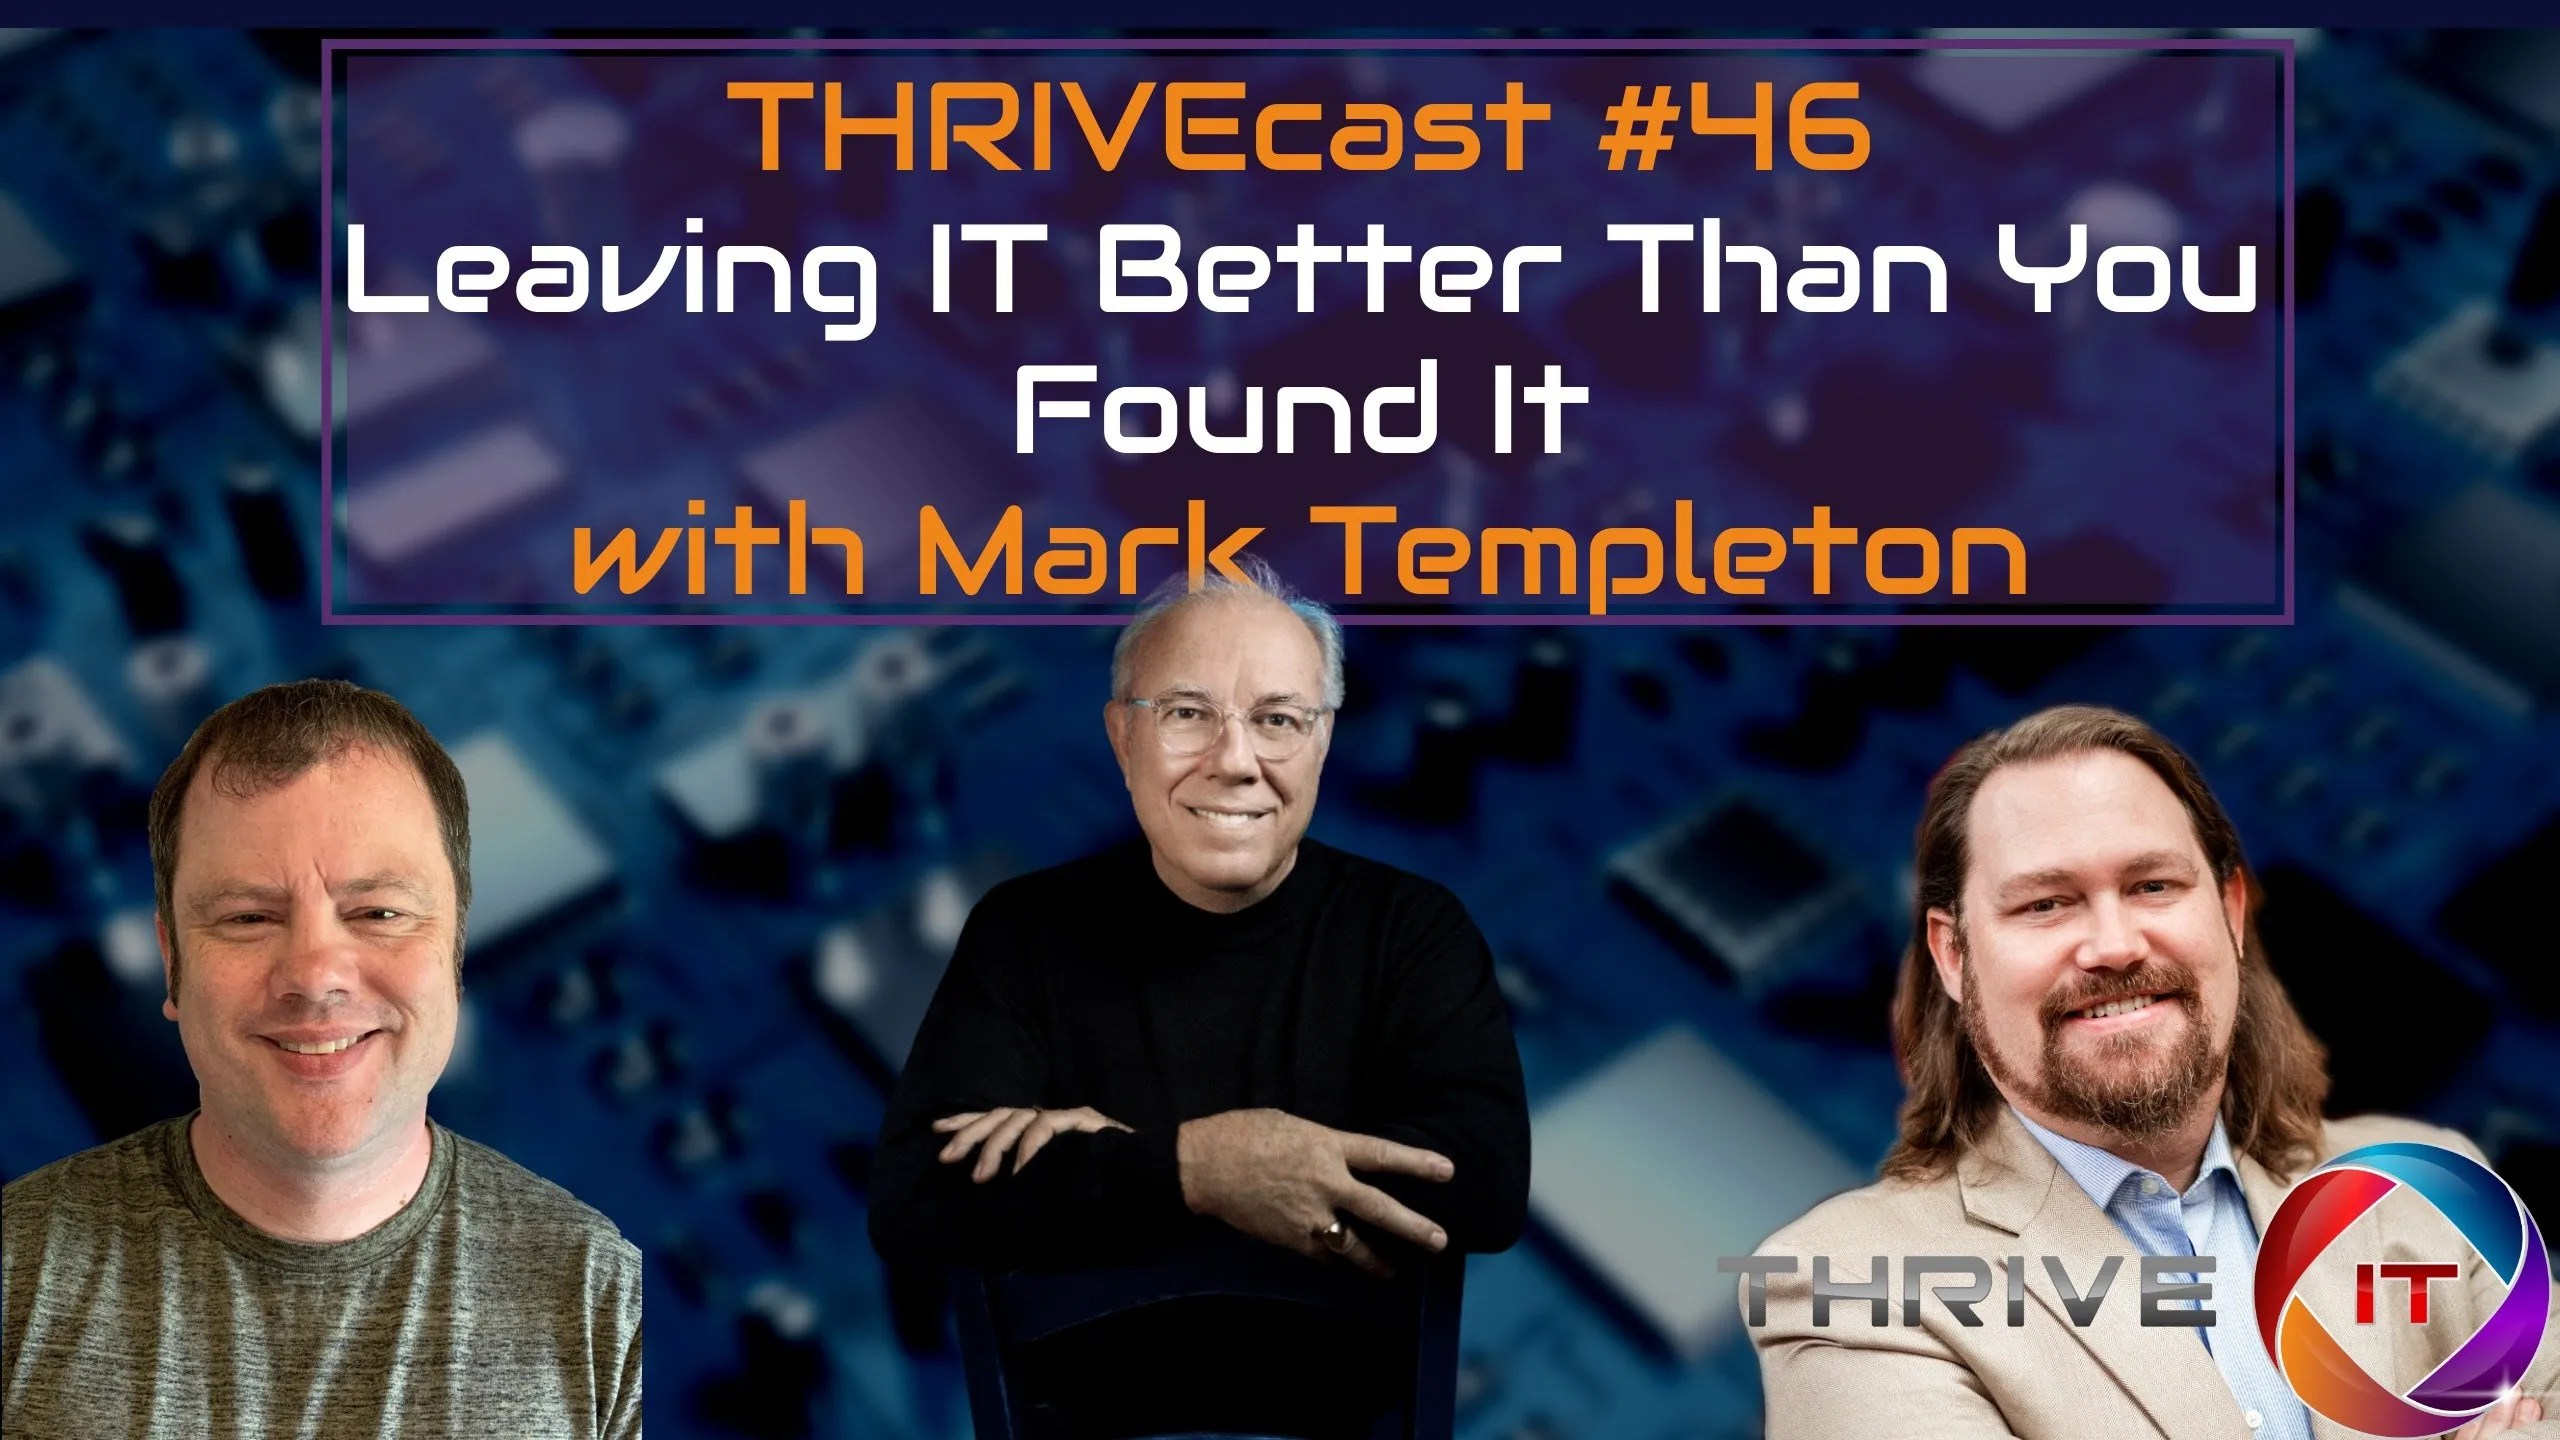 THRIVEcast 46 Banner Image